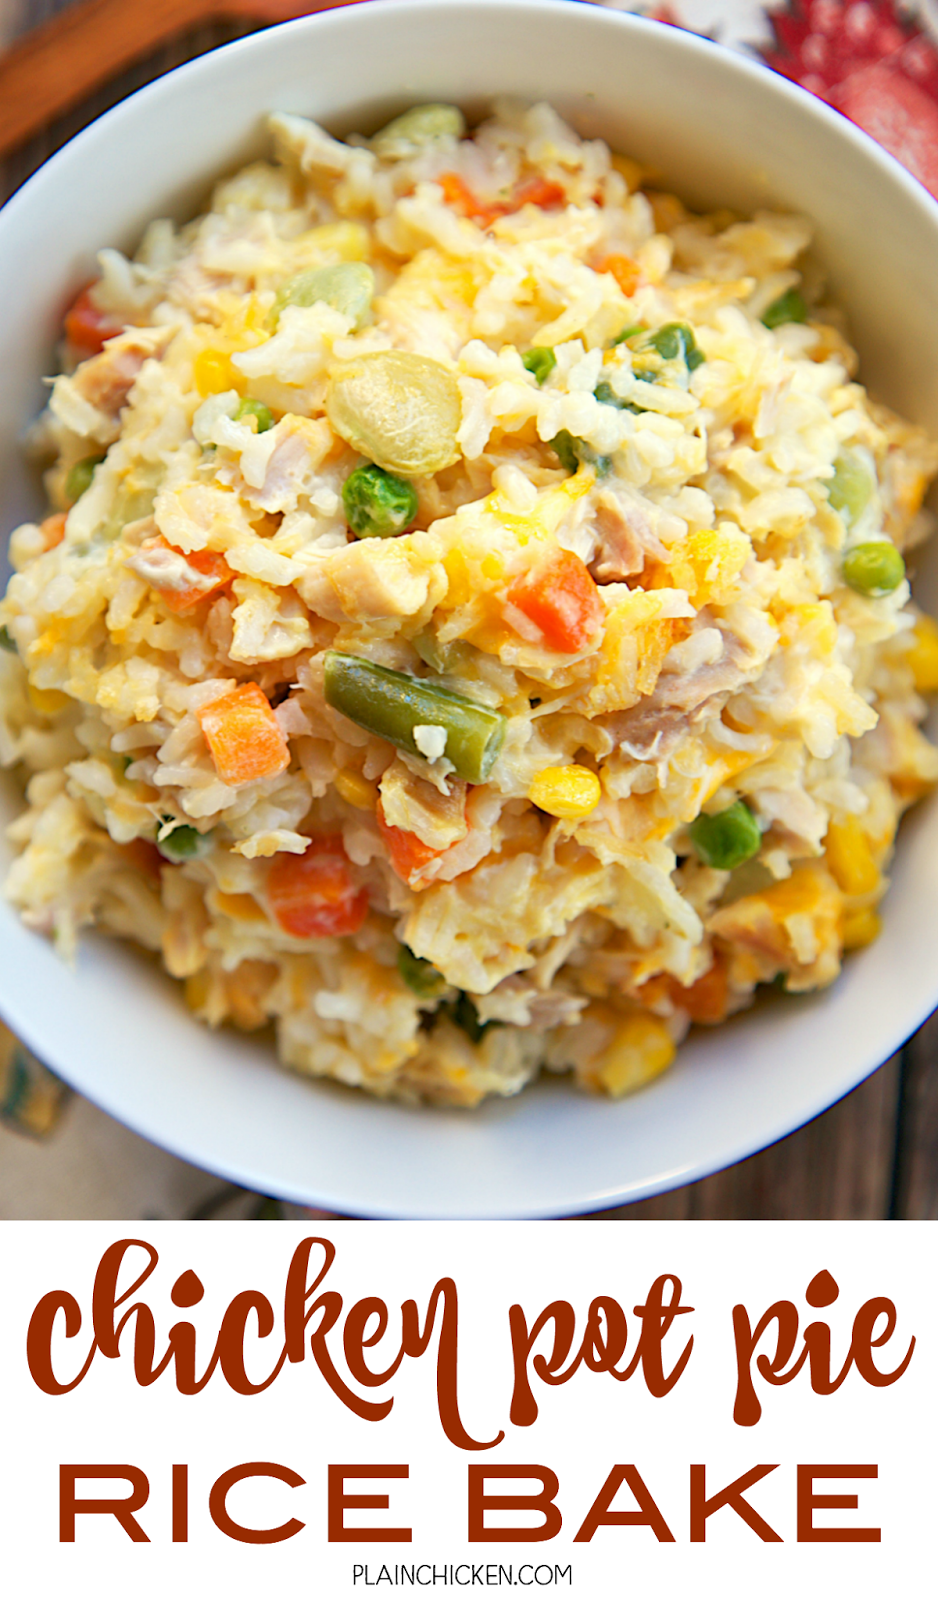 Chicken Pot Pie Rice Bake - chicken, mixed vegetables, cheddar, cream of chicken, sour cream and rice. Ready in 30 minutes! A whole meal in one pan. No need for extra sides!! We love to serve this with some buttermilk biscuits to complete the meal. Everyone loves this easy casserole dish!